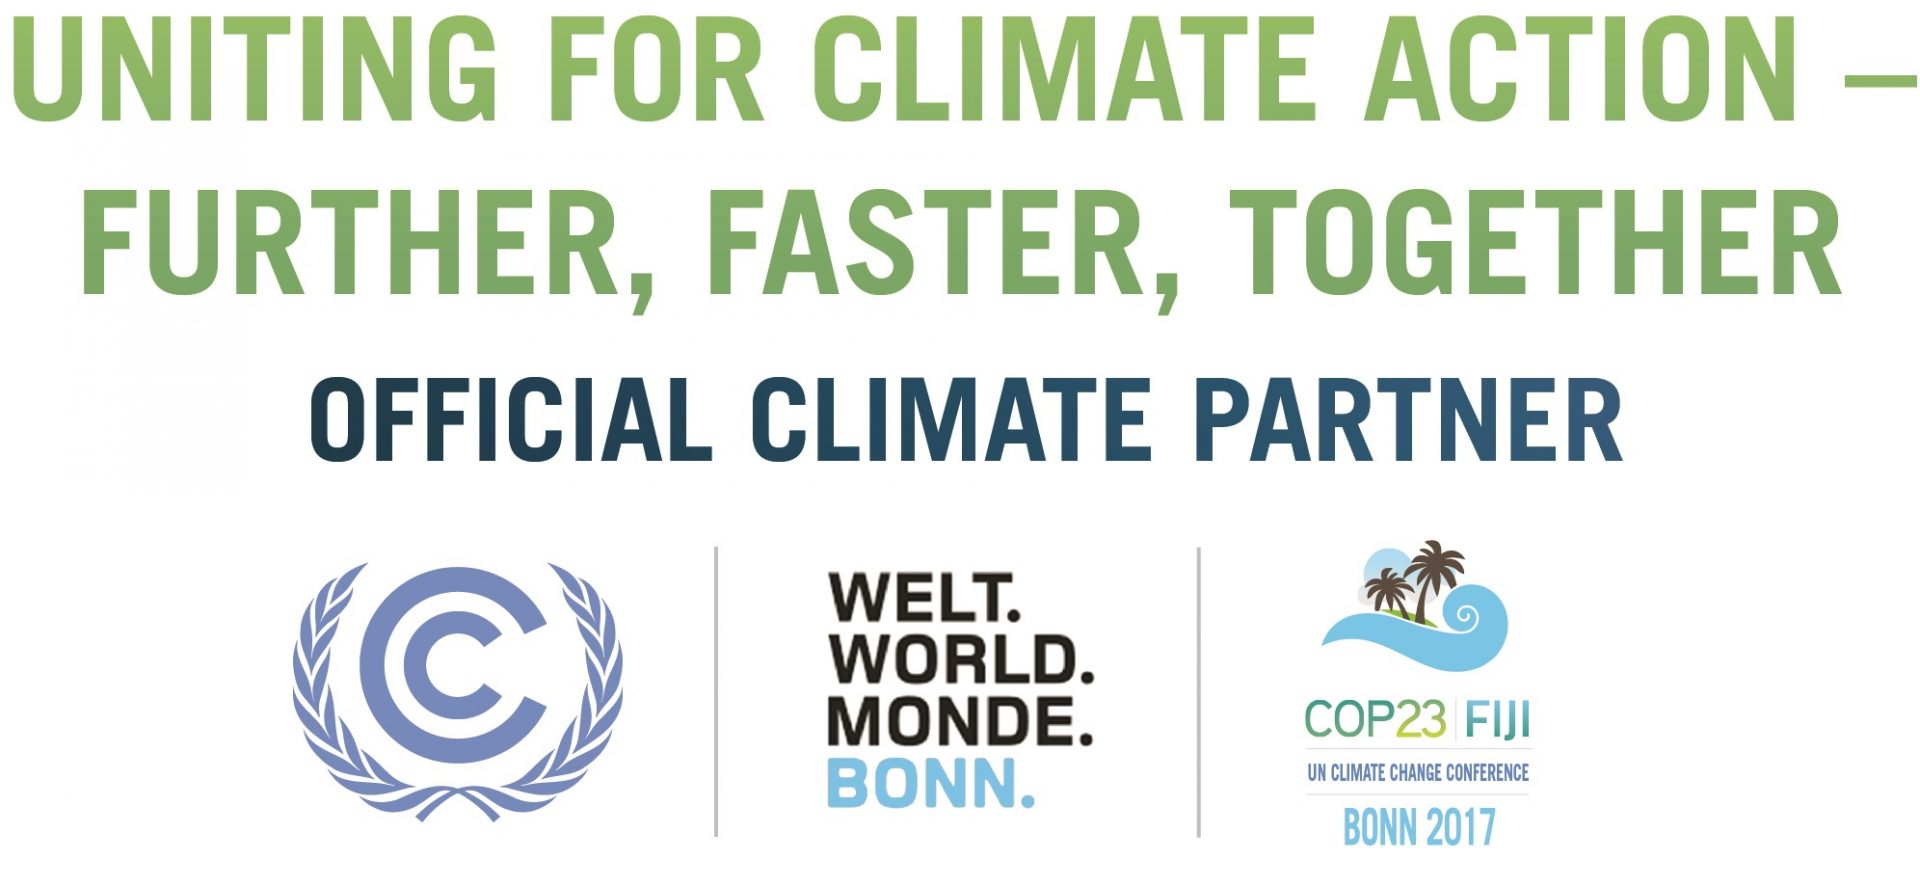 COP23 BonnCity Official Climate Partner Logo_Bea